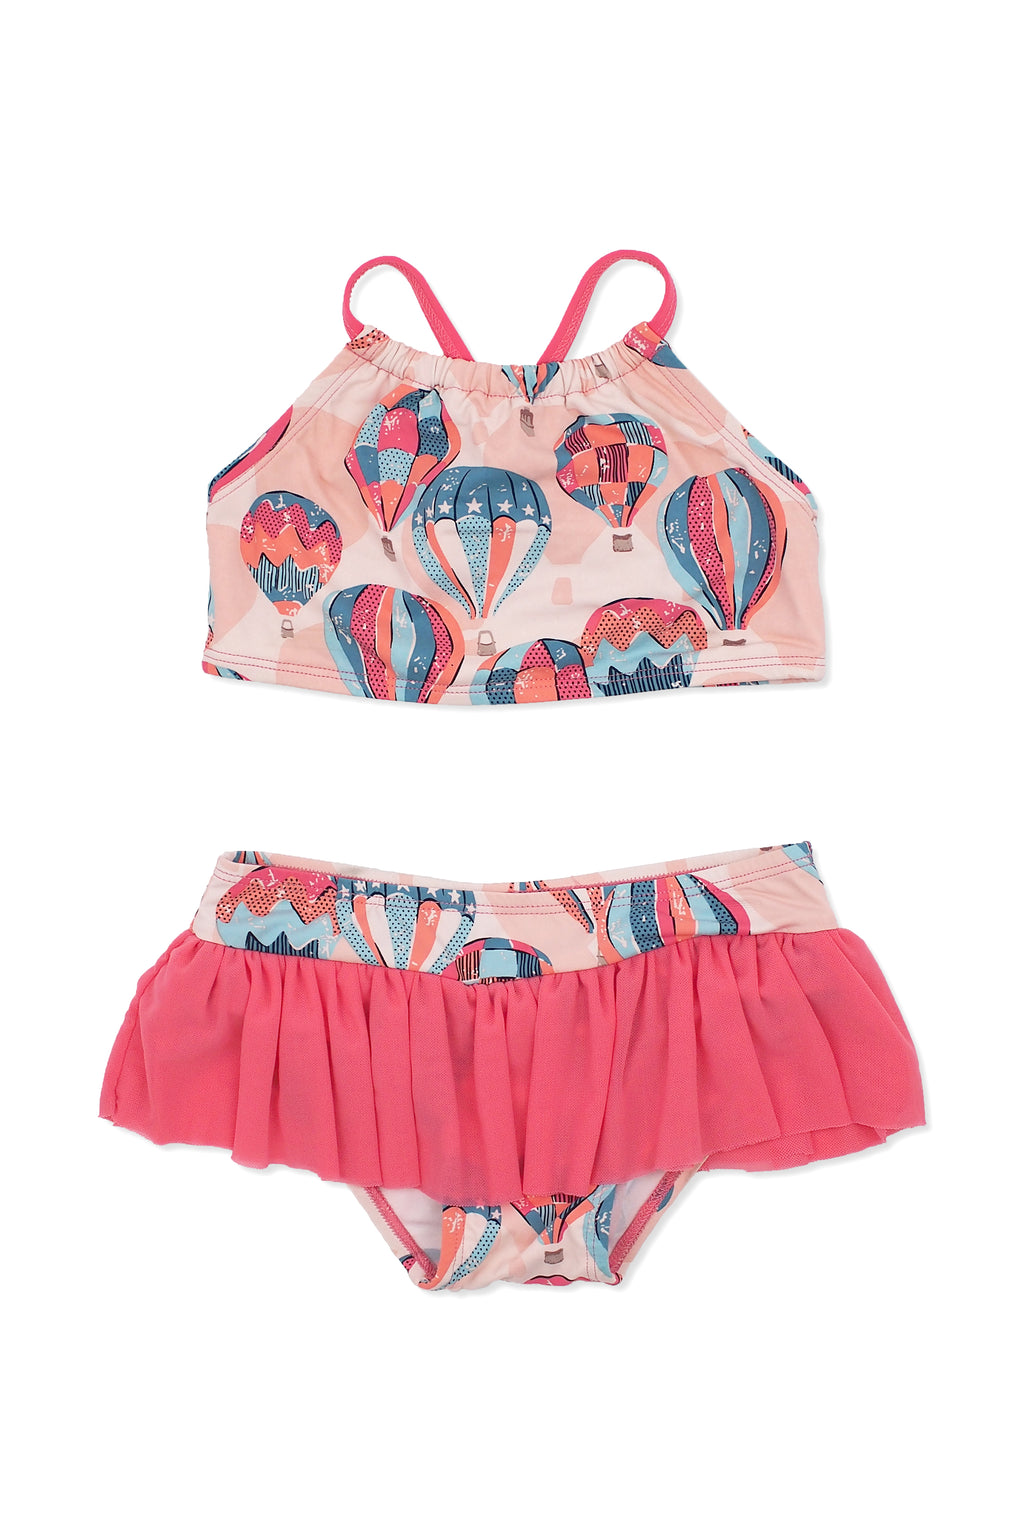 Hot Air Balloons Crop Bikini Set, peach